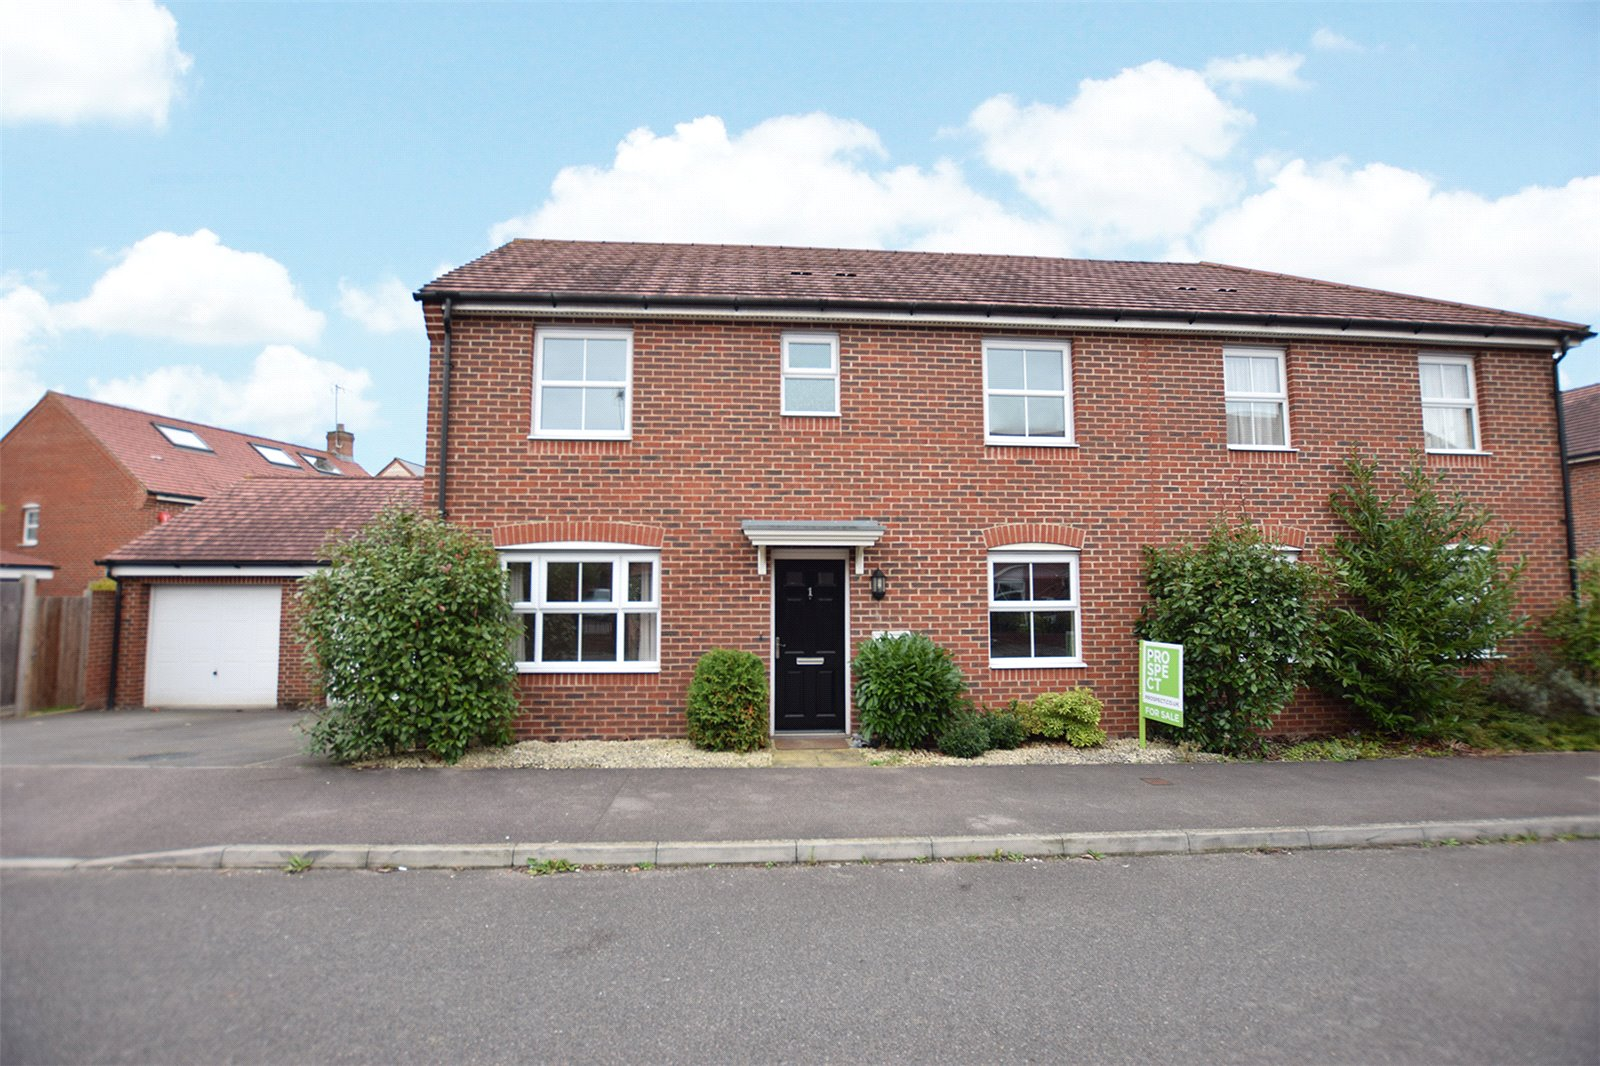 3 Bedrooms Semi Detached House for sale in Pheasant View, Jennetts Park, Bracknell, Berkshire, RG12